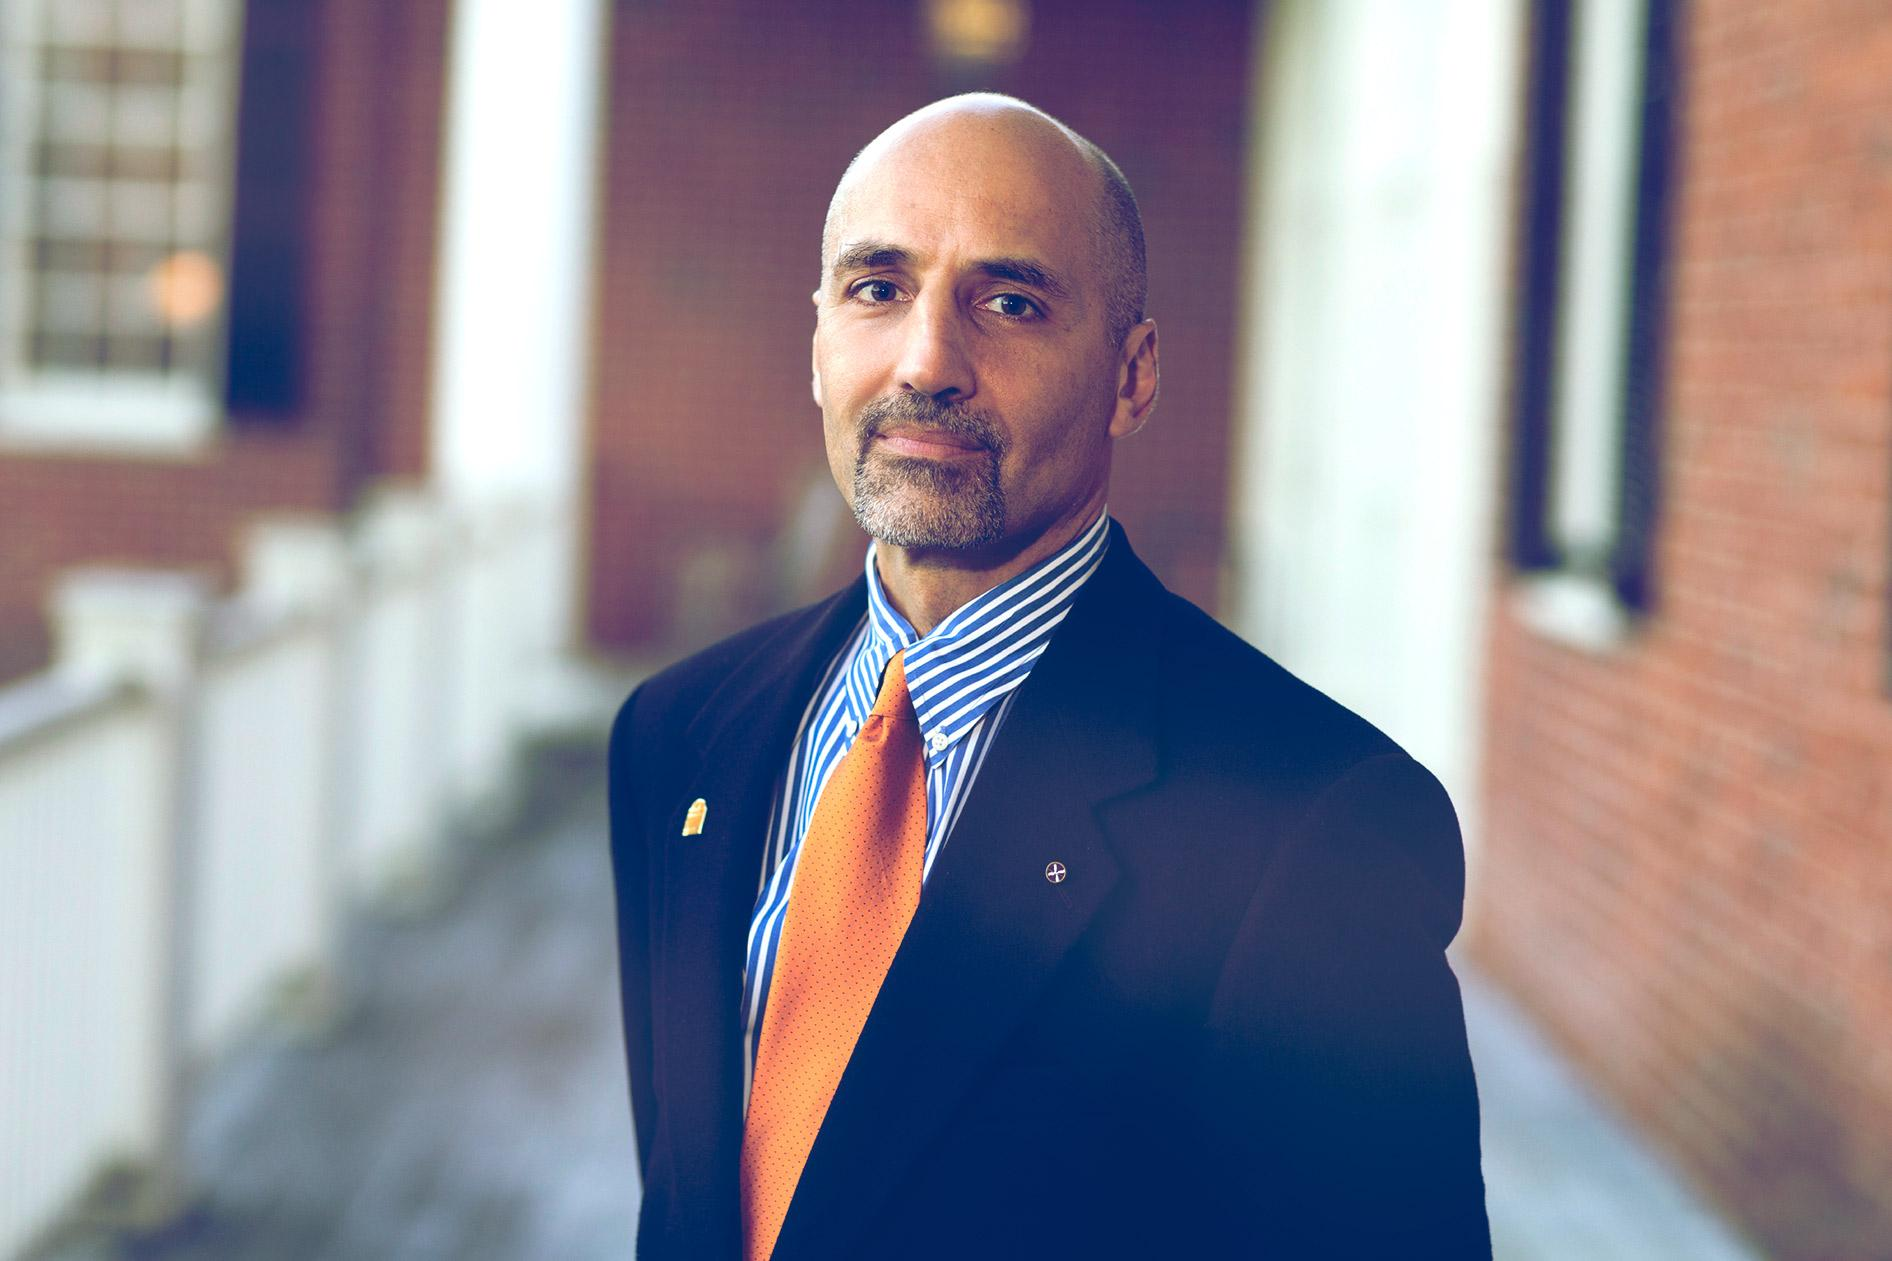 William Antholis is the CEO of UVA's Miller Center and a former official in the Clinton White House.